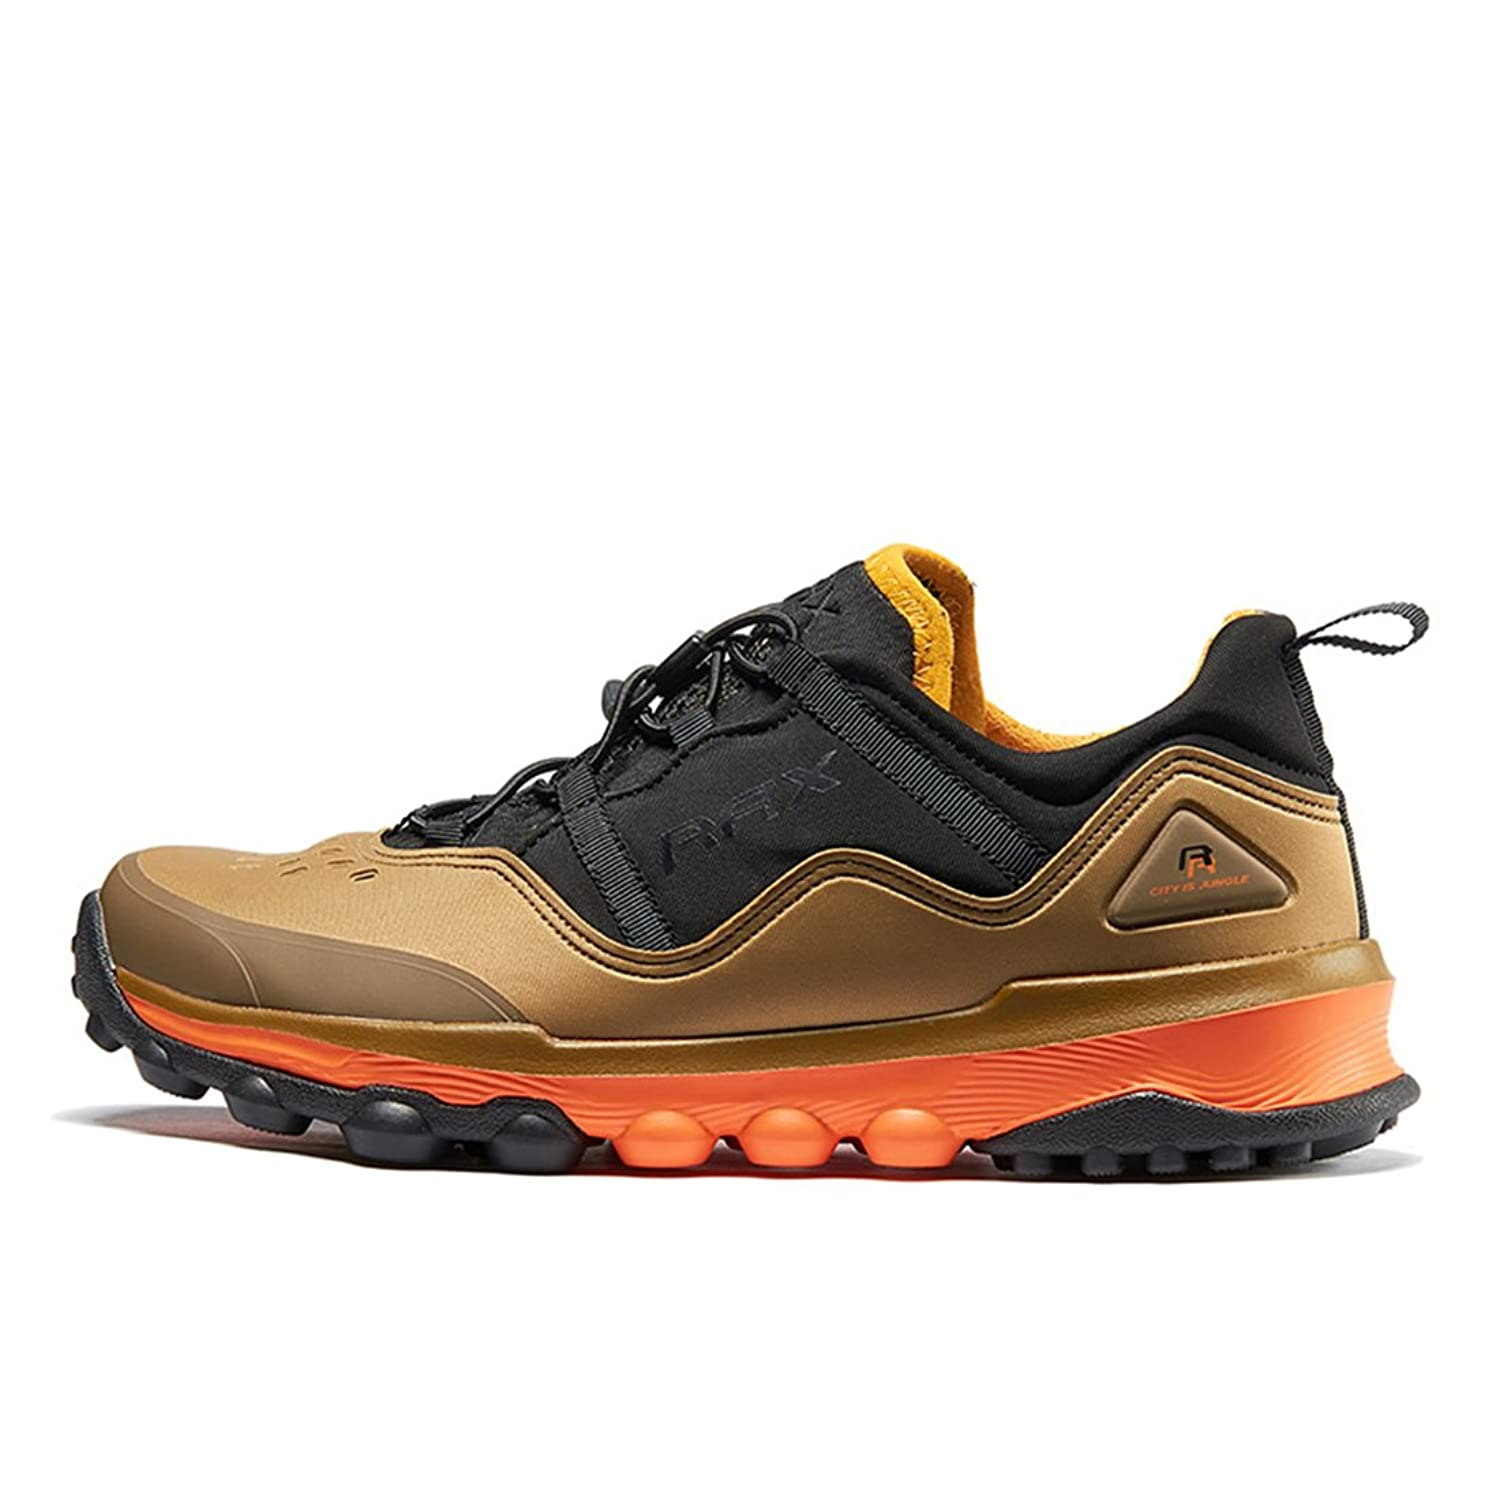 RAX Men's Breathable Hiking Shoes